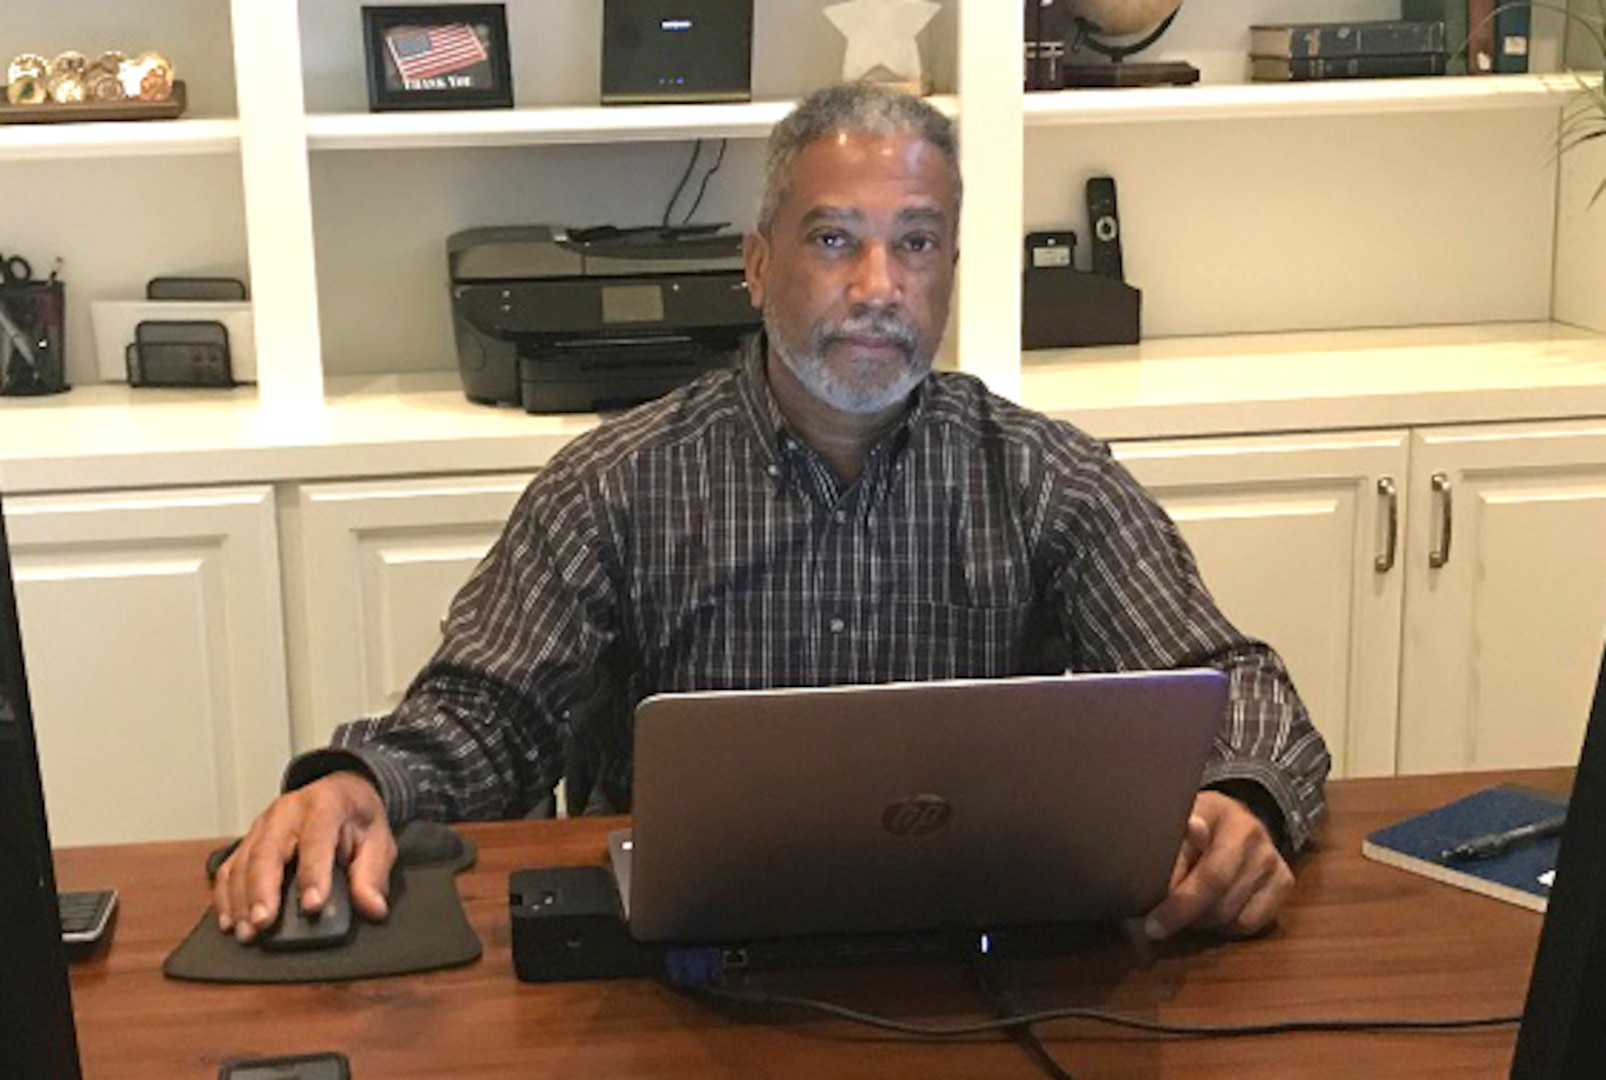 a man sits at a desk in front of computer